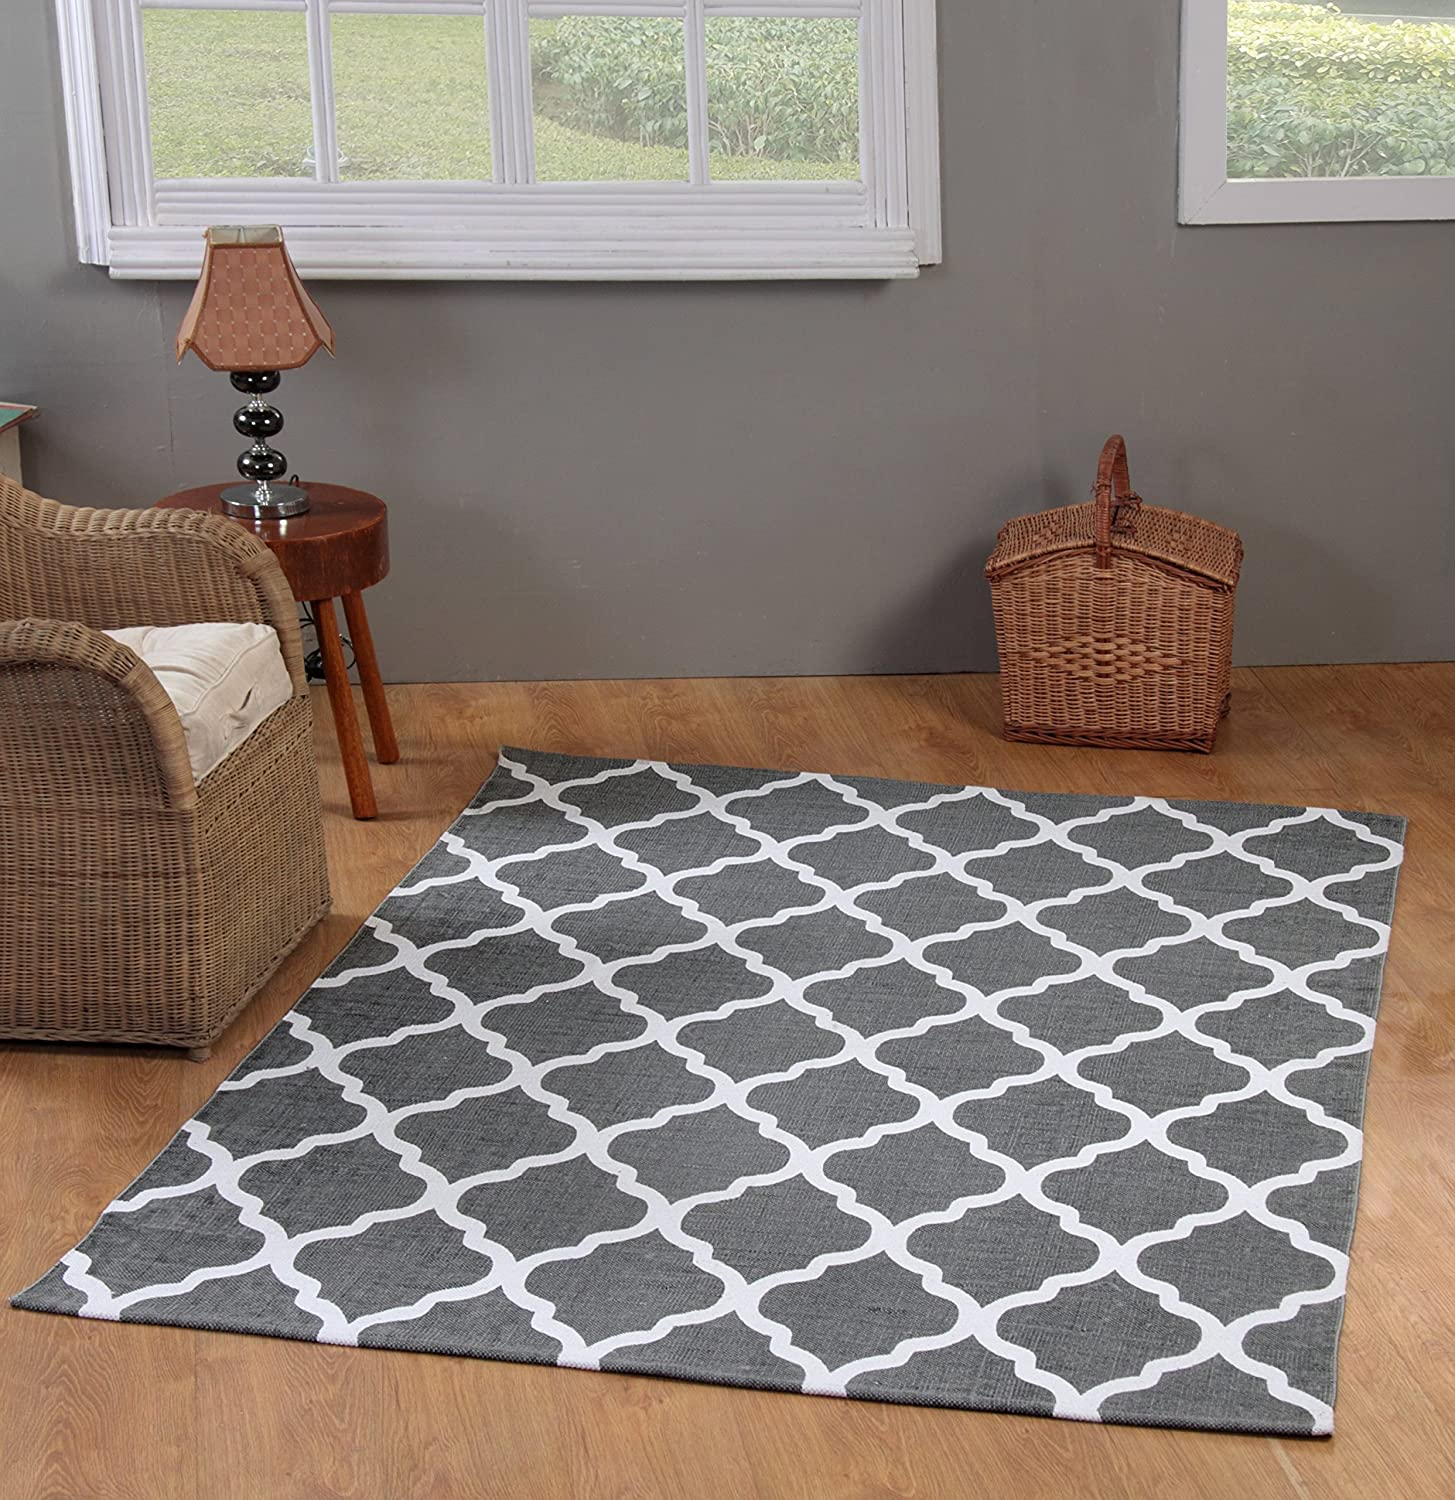 5 by 7 rugs. Amazon.com: Chesapeake Merchandising 5-feet By 7-feet Flatweave Area Rug Moroccan Design In Grey And White: Kitchen \u0026 Dining 5 7 Rugs T